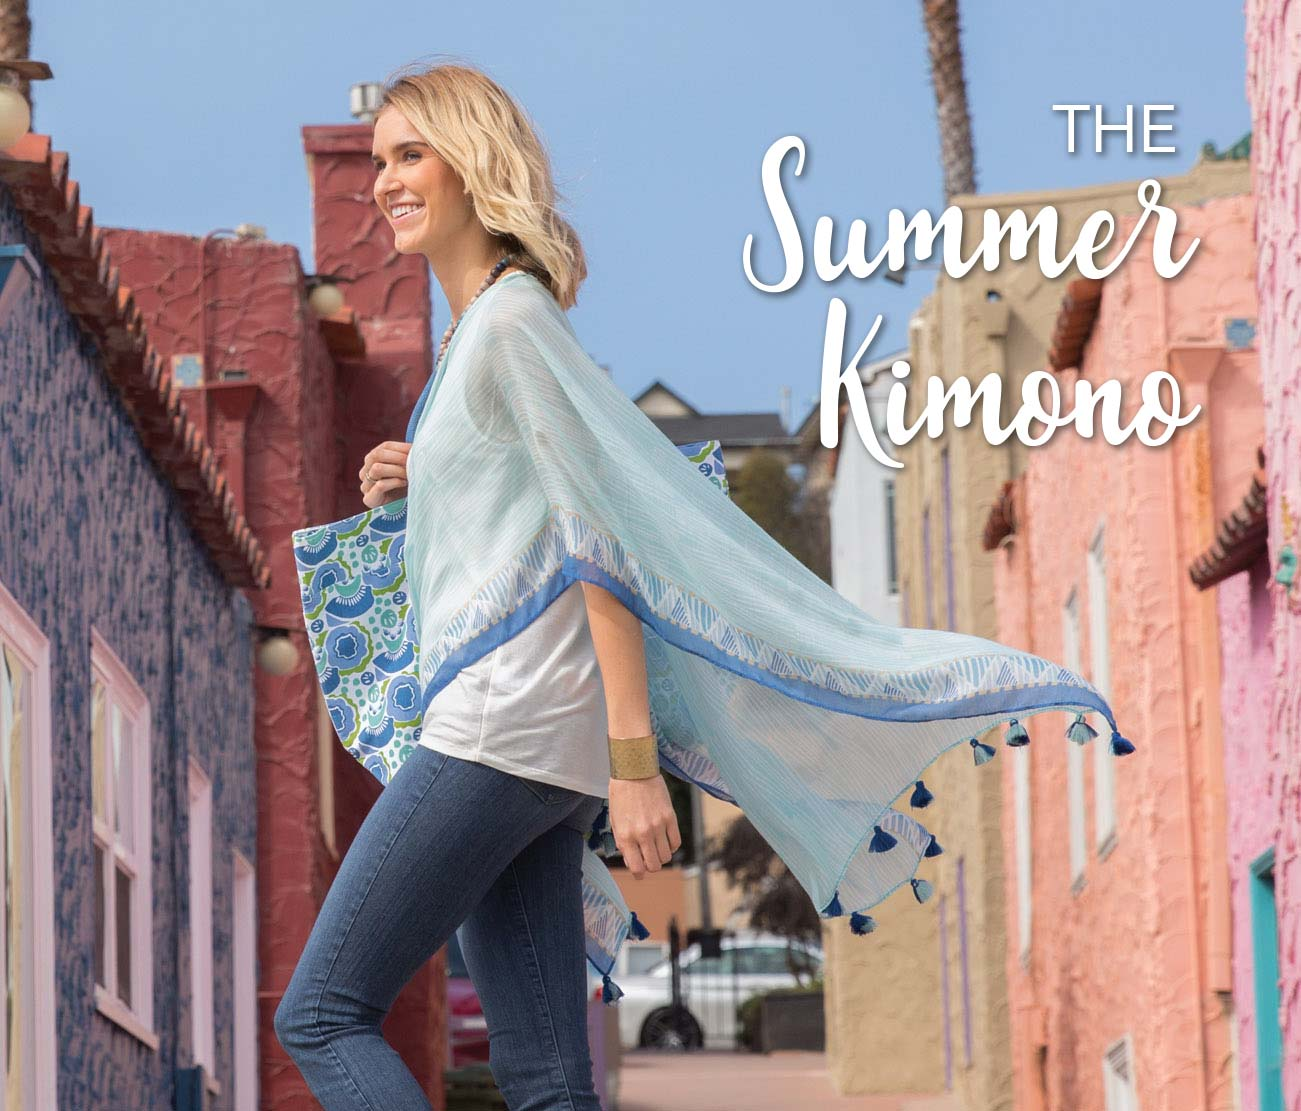 Our light, summer kimono is perfect for adventures on your beach vacation.